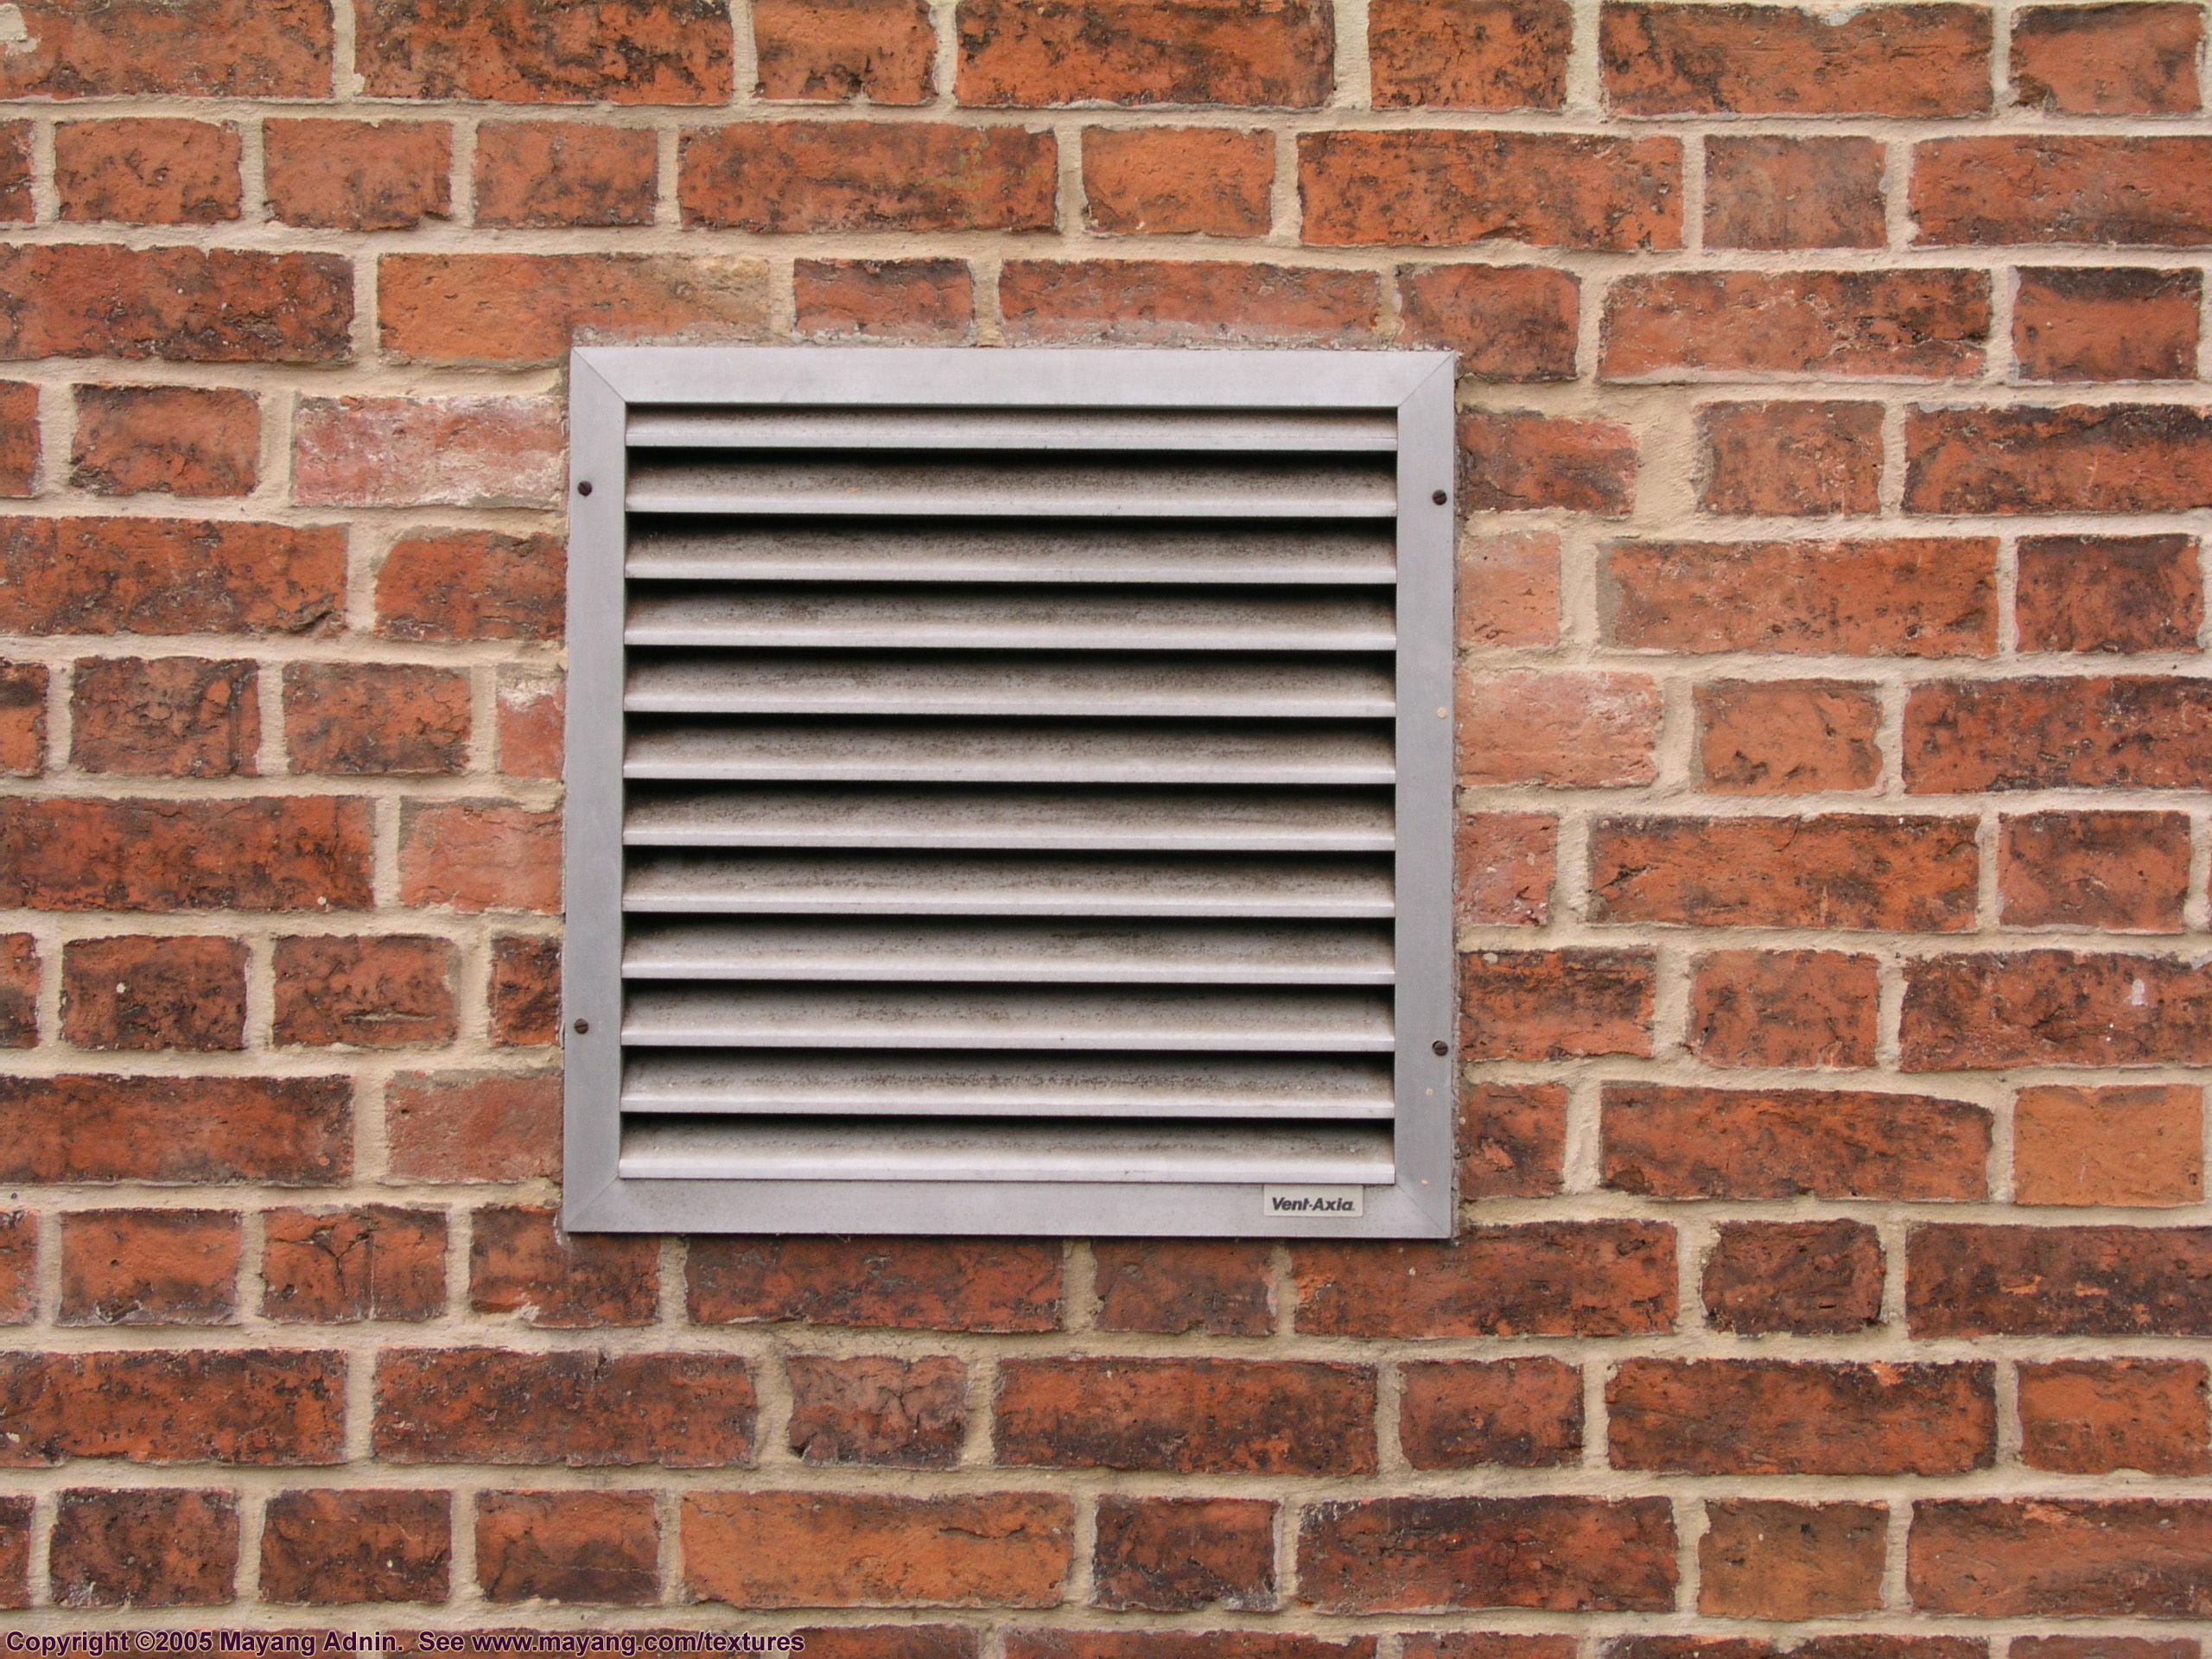 air vent covers to block air ventilation Pinterest